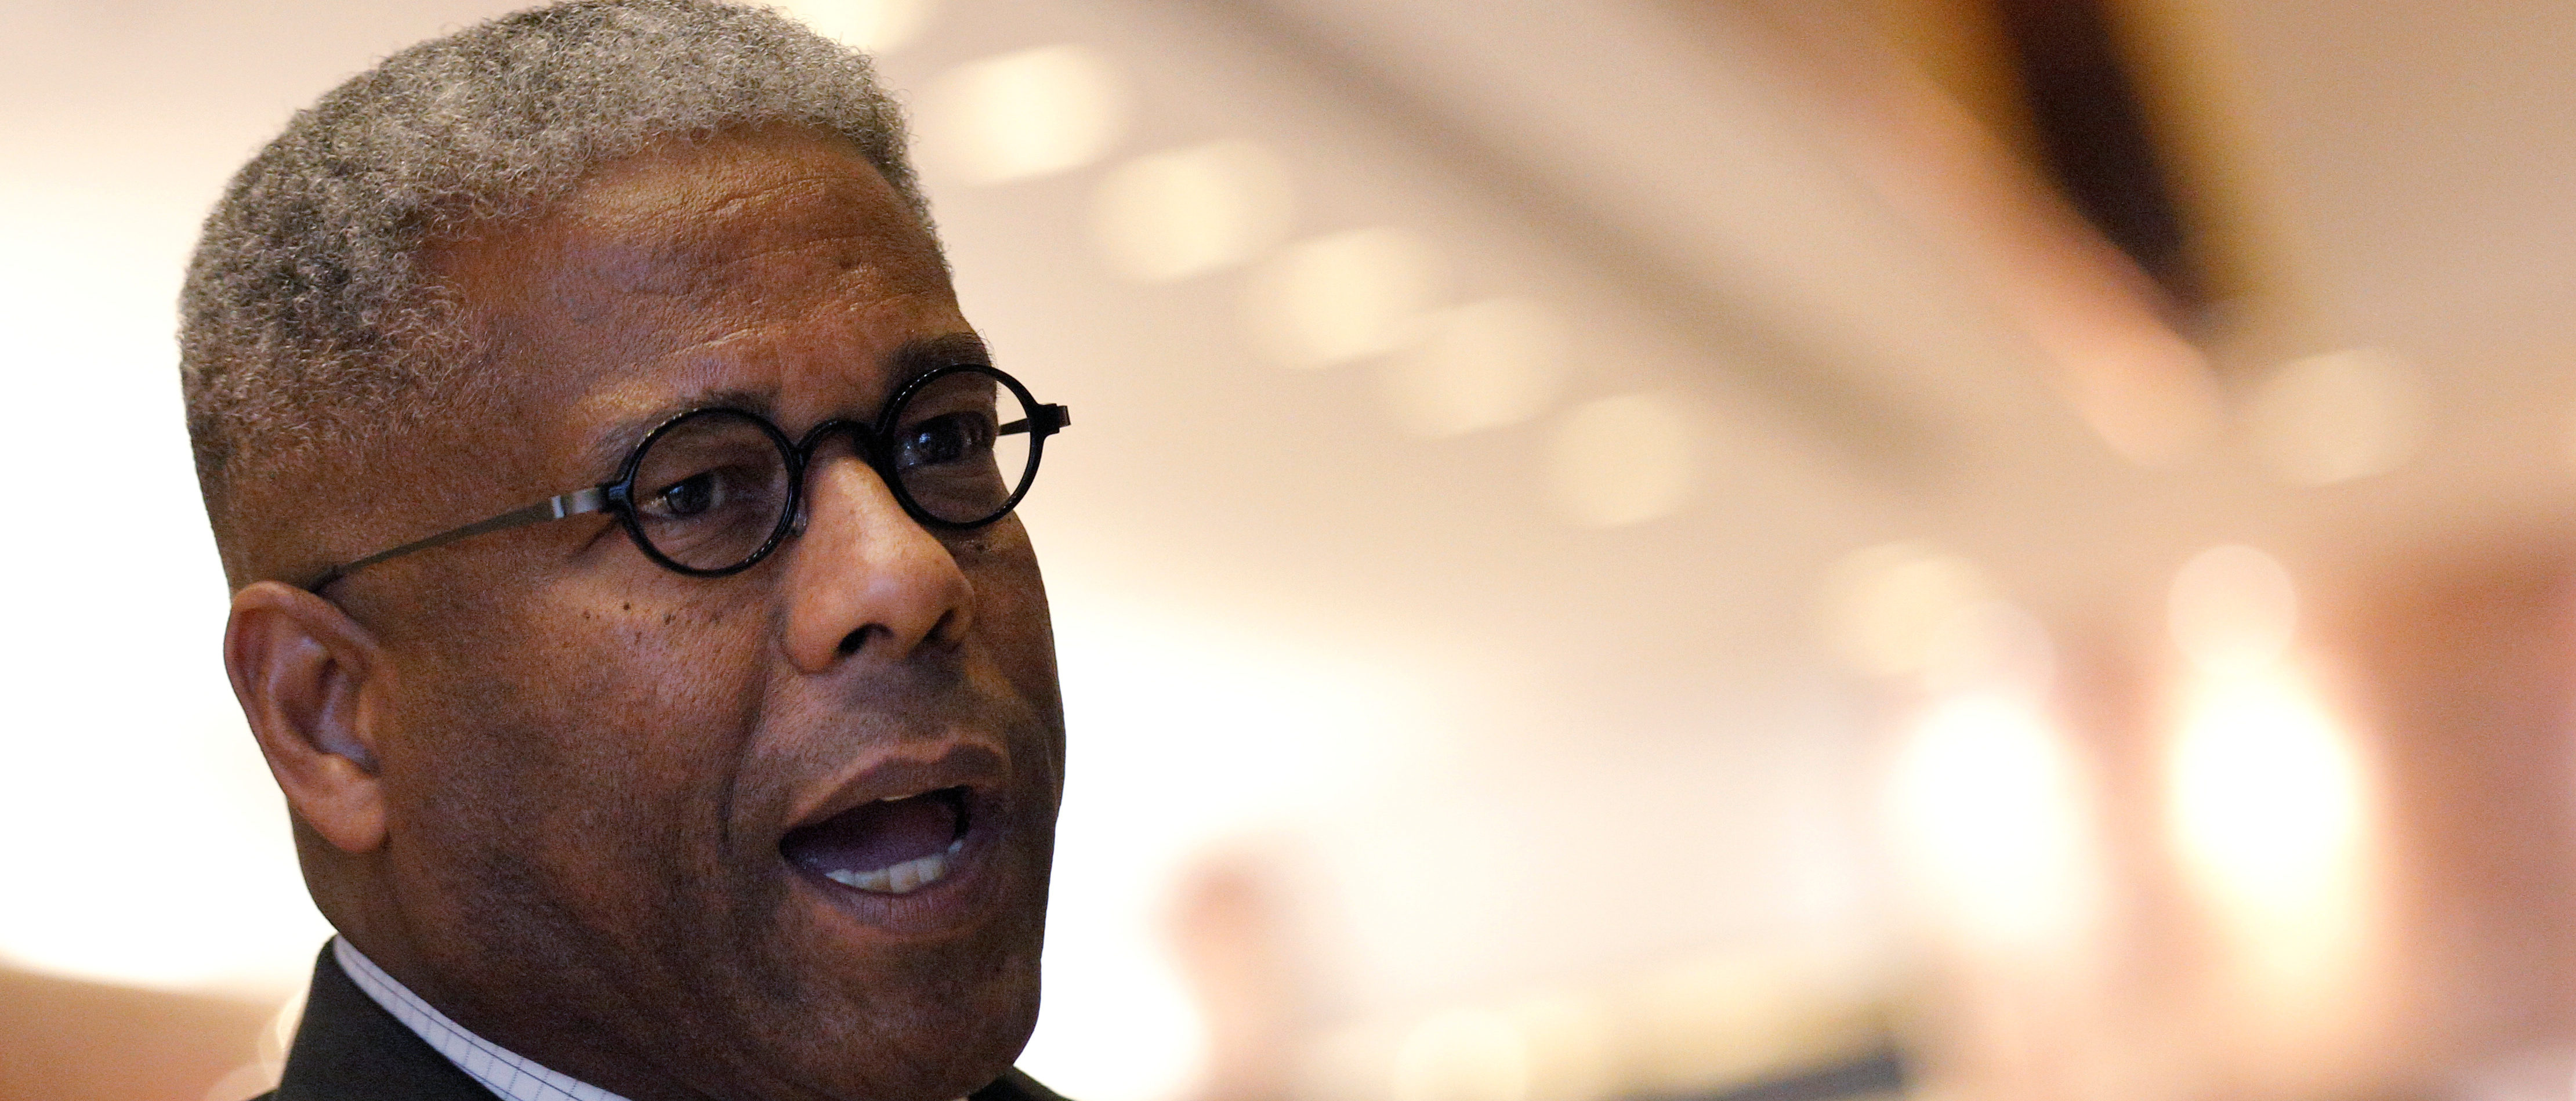 Former U.S. Congressman and retired U.S. Army Lieutenant Colonel Allen West speaks to the press after meeting with U.S. President-elect Donald Trump at Trump Tower in Manhattan, New York City, U.S. December 5, 2016. REUTERS/Brendan McDermid - RC12DC7B0D60